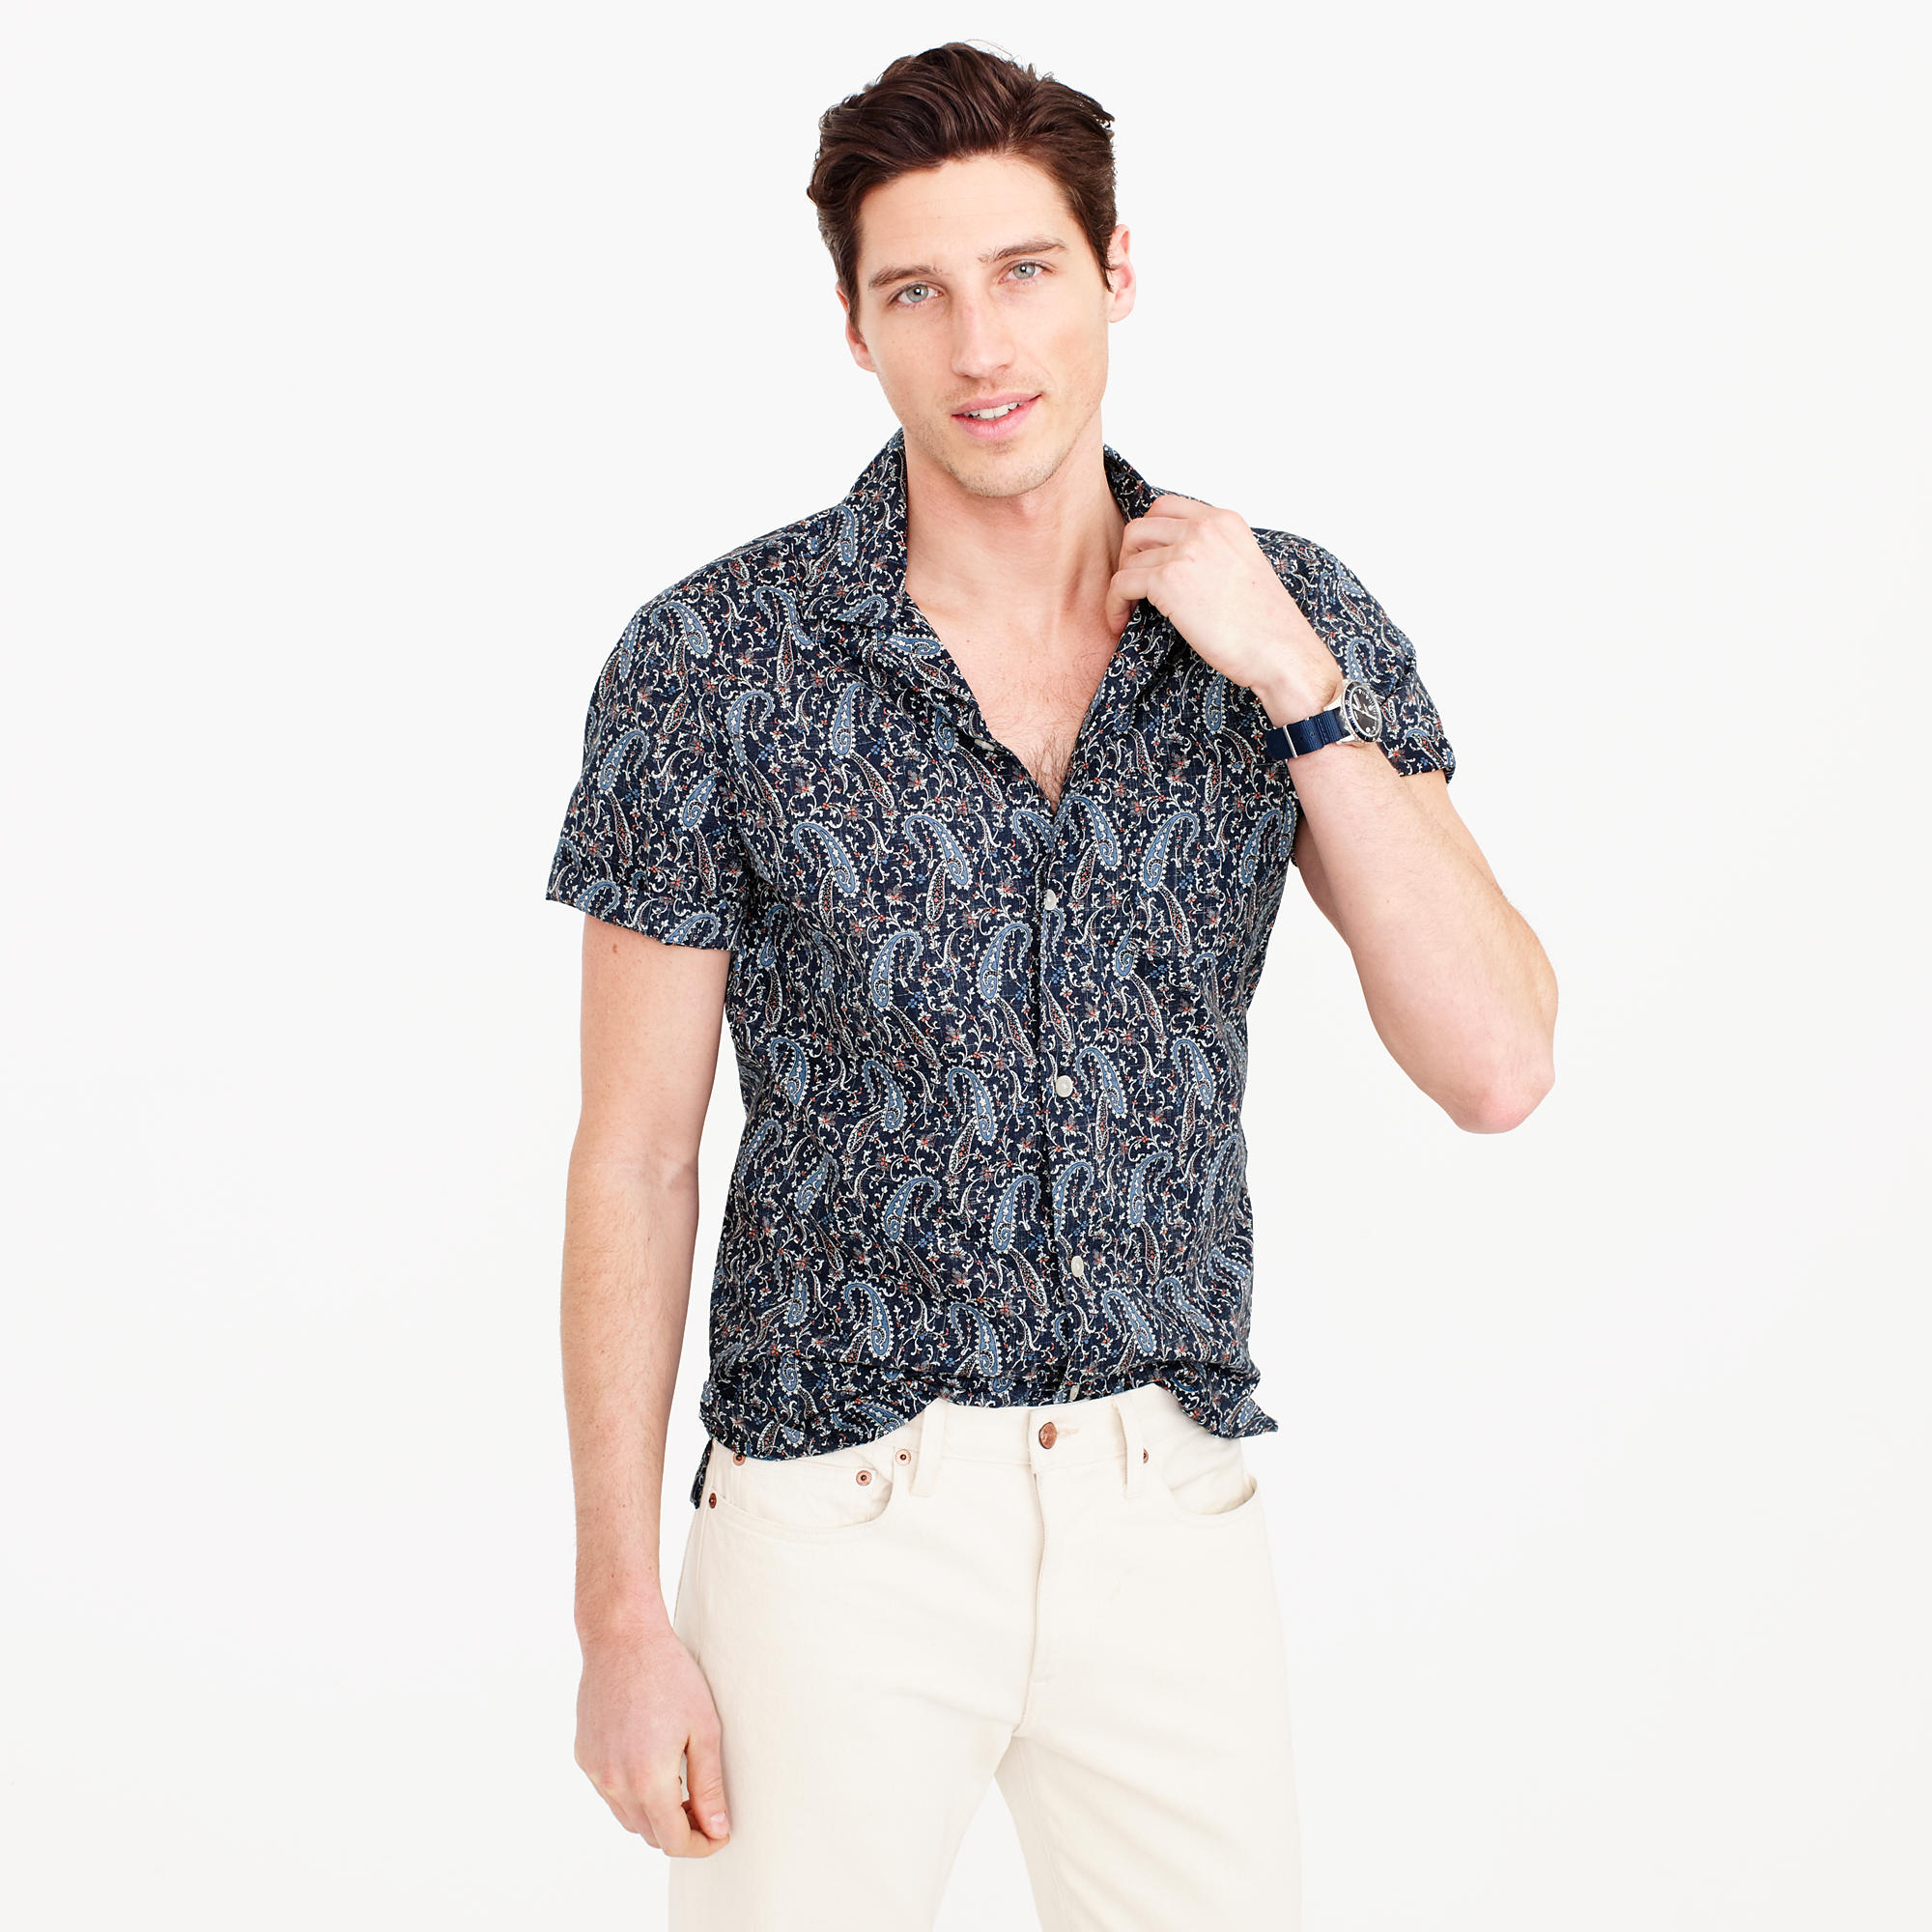 Men's Shirts, Button Downs, Oxfords, Washed Shirts and More ...